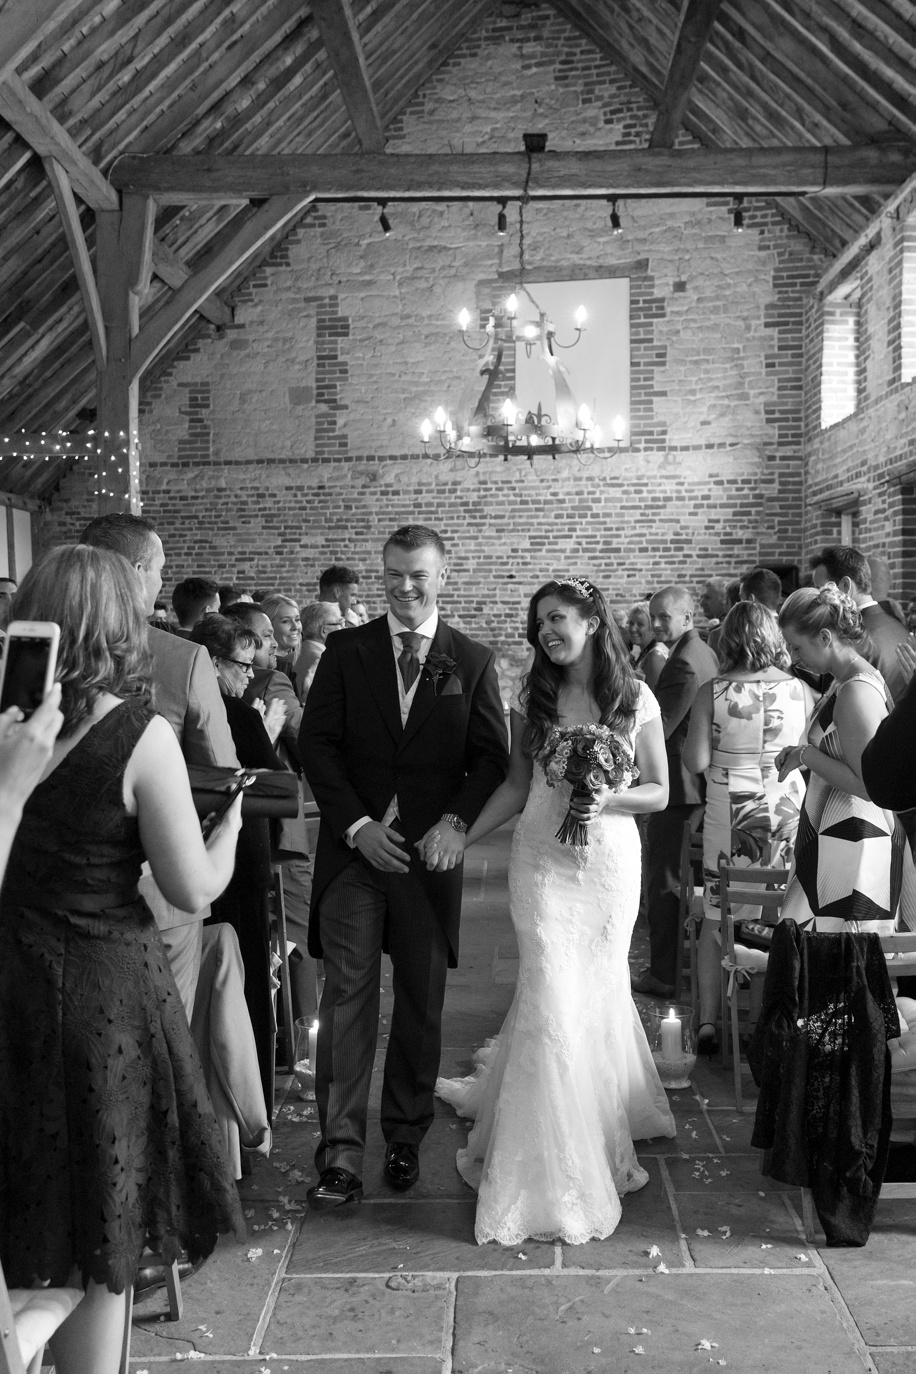 Bride and Groom walking up the aisle together